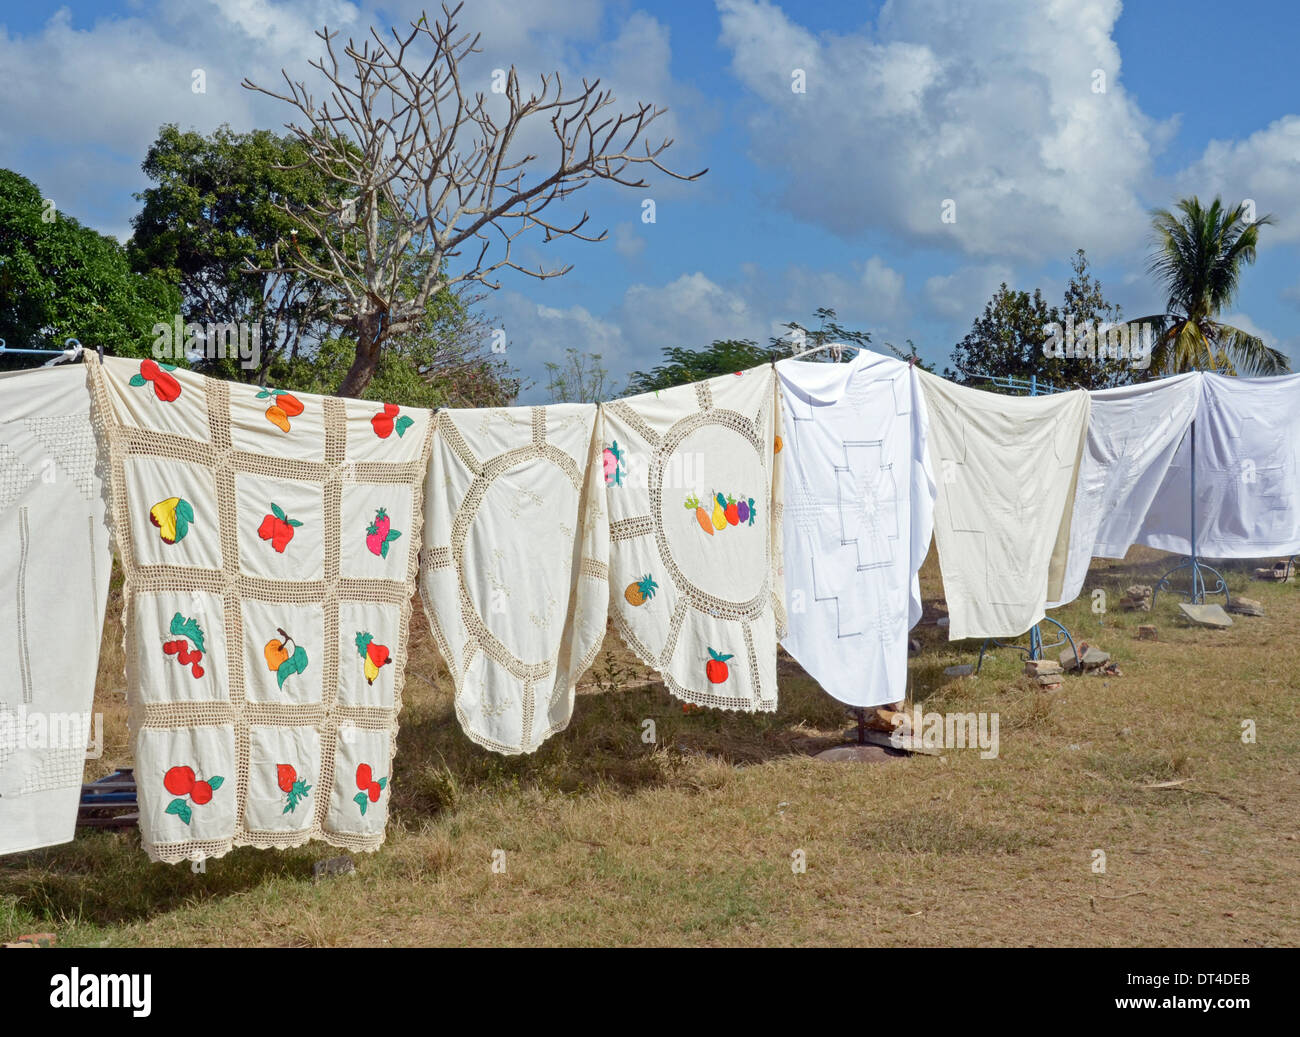 Hand-made tablecloths for sale, Cuba - Stock Image